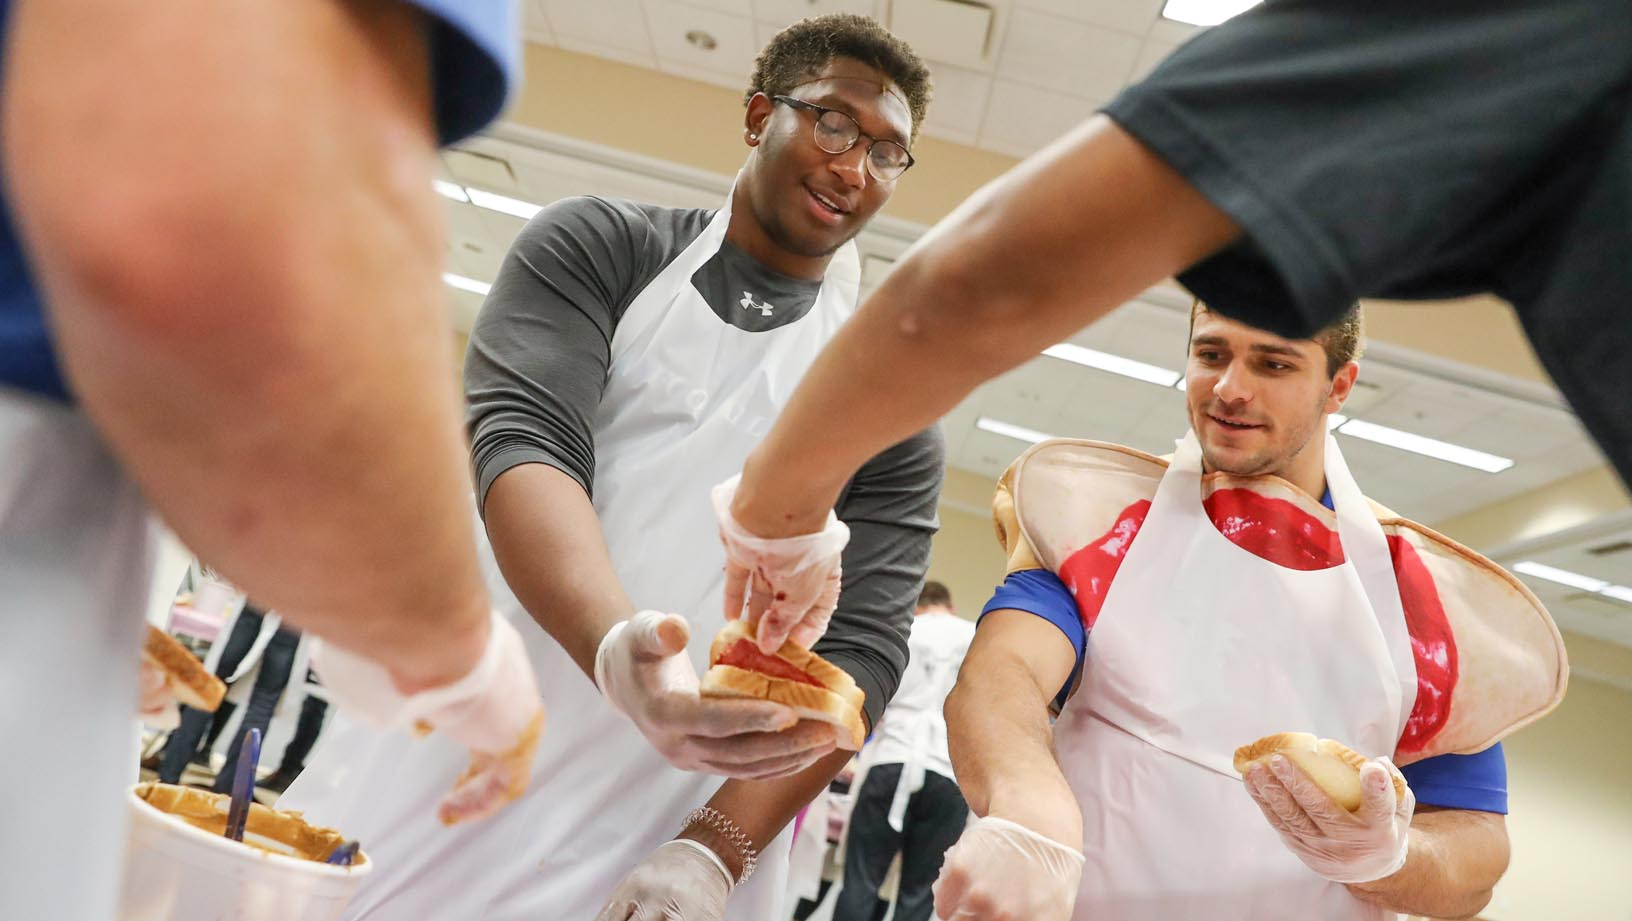 UNK football players Dakarai Monegain-Box, left, and Luke Quinn work with other student-athletes Tuesday during a peanut butter and jelly sandwich drive on campus. UNK Athletics partnered with Sodexo to make and distribute nearly 3,500 sandwiches. (Photos by Corbey R. Dorsey, UNK Communications)